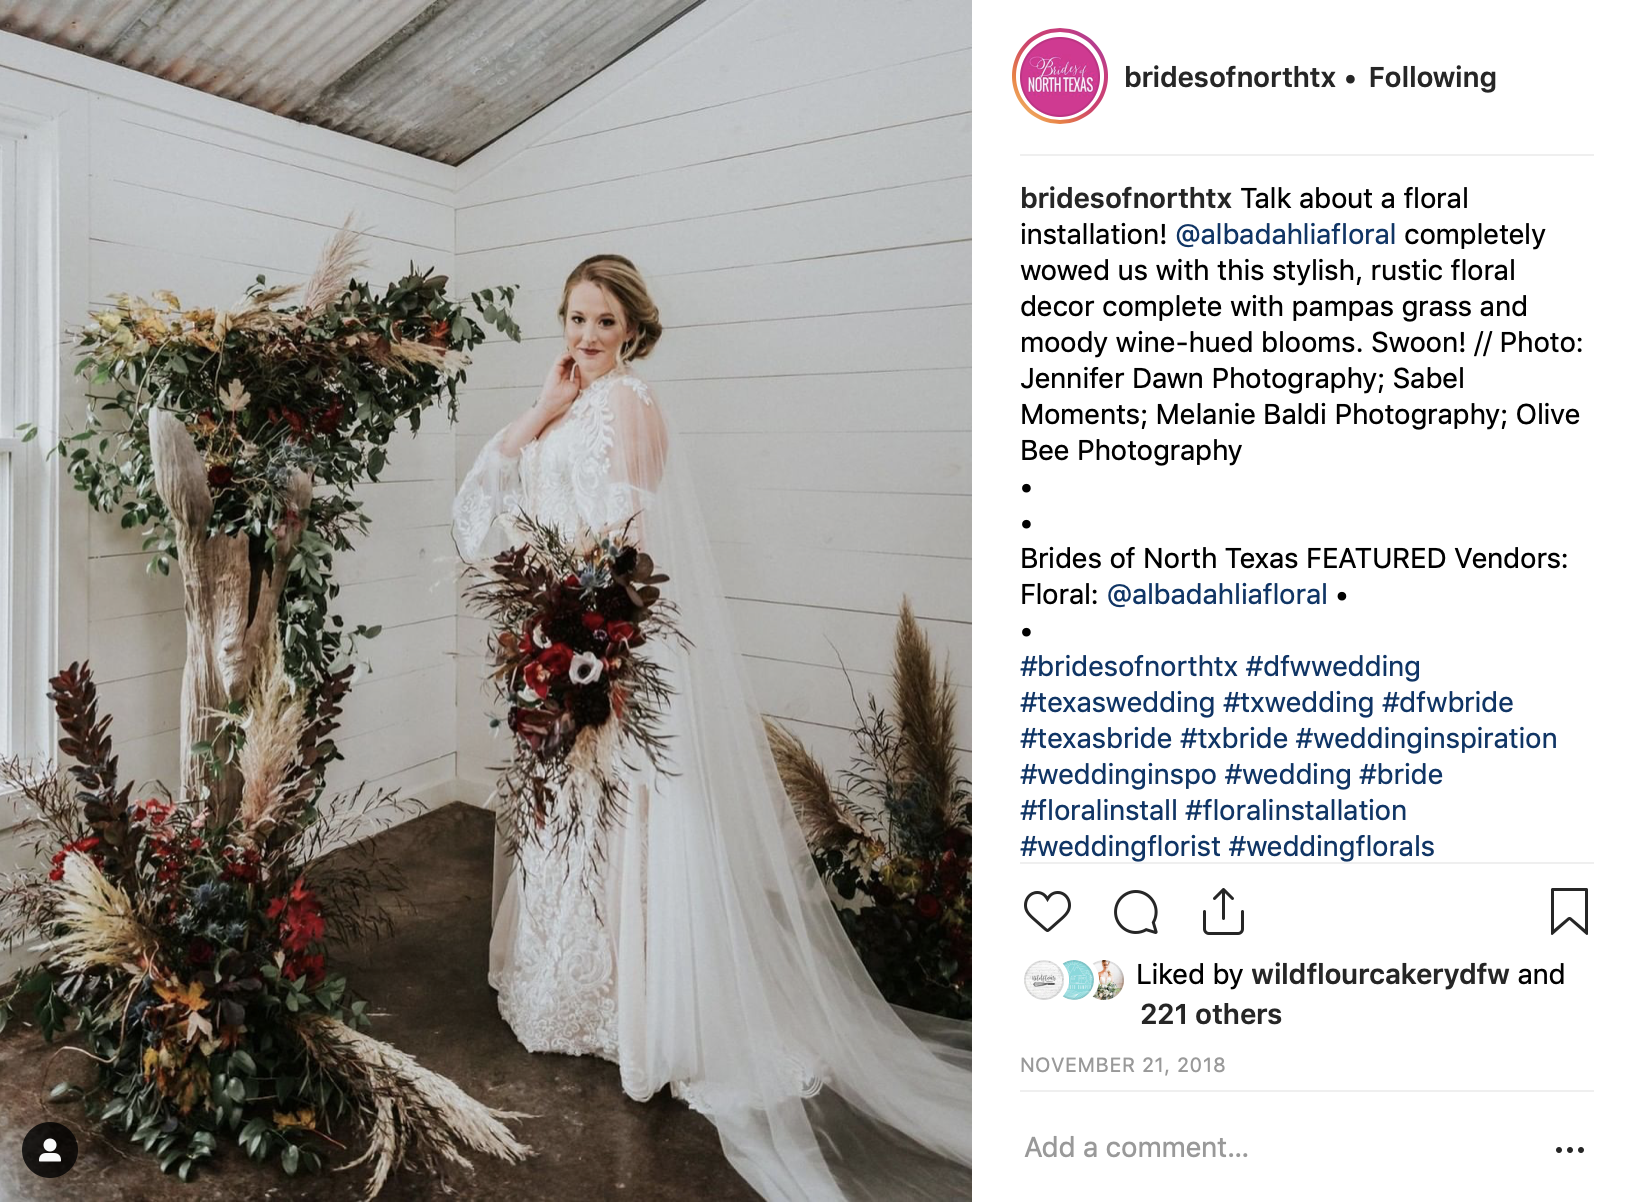 Brides of North Texas Instagram - Our Gothic Glam styled shoot was featured on their Instagram! Check out our instagram: @southernhousewivesplanning